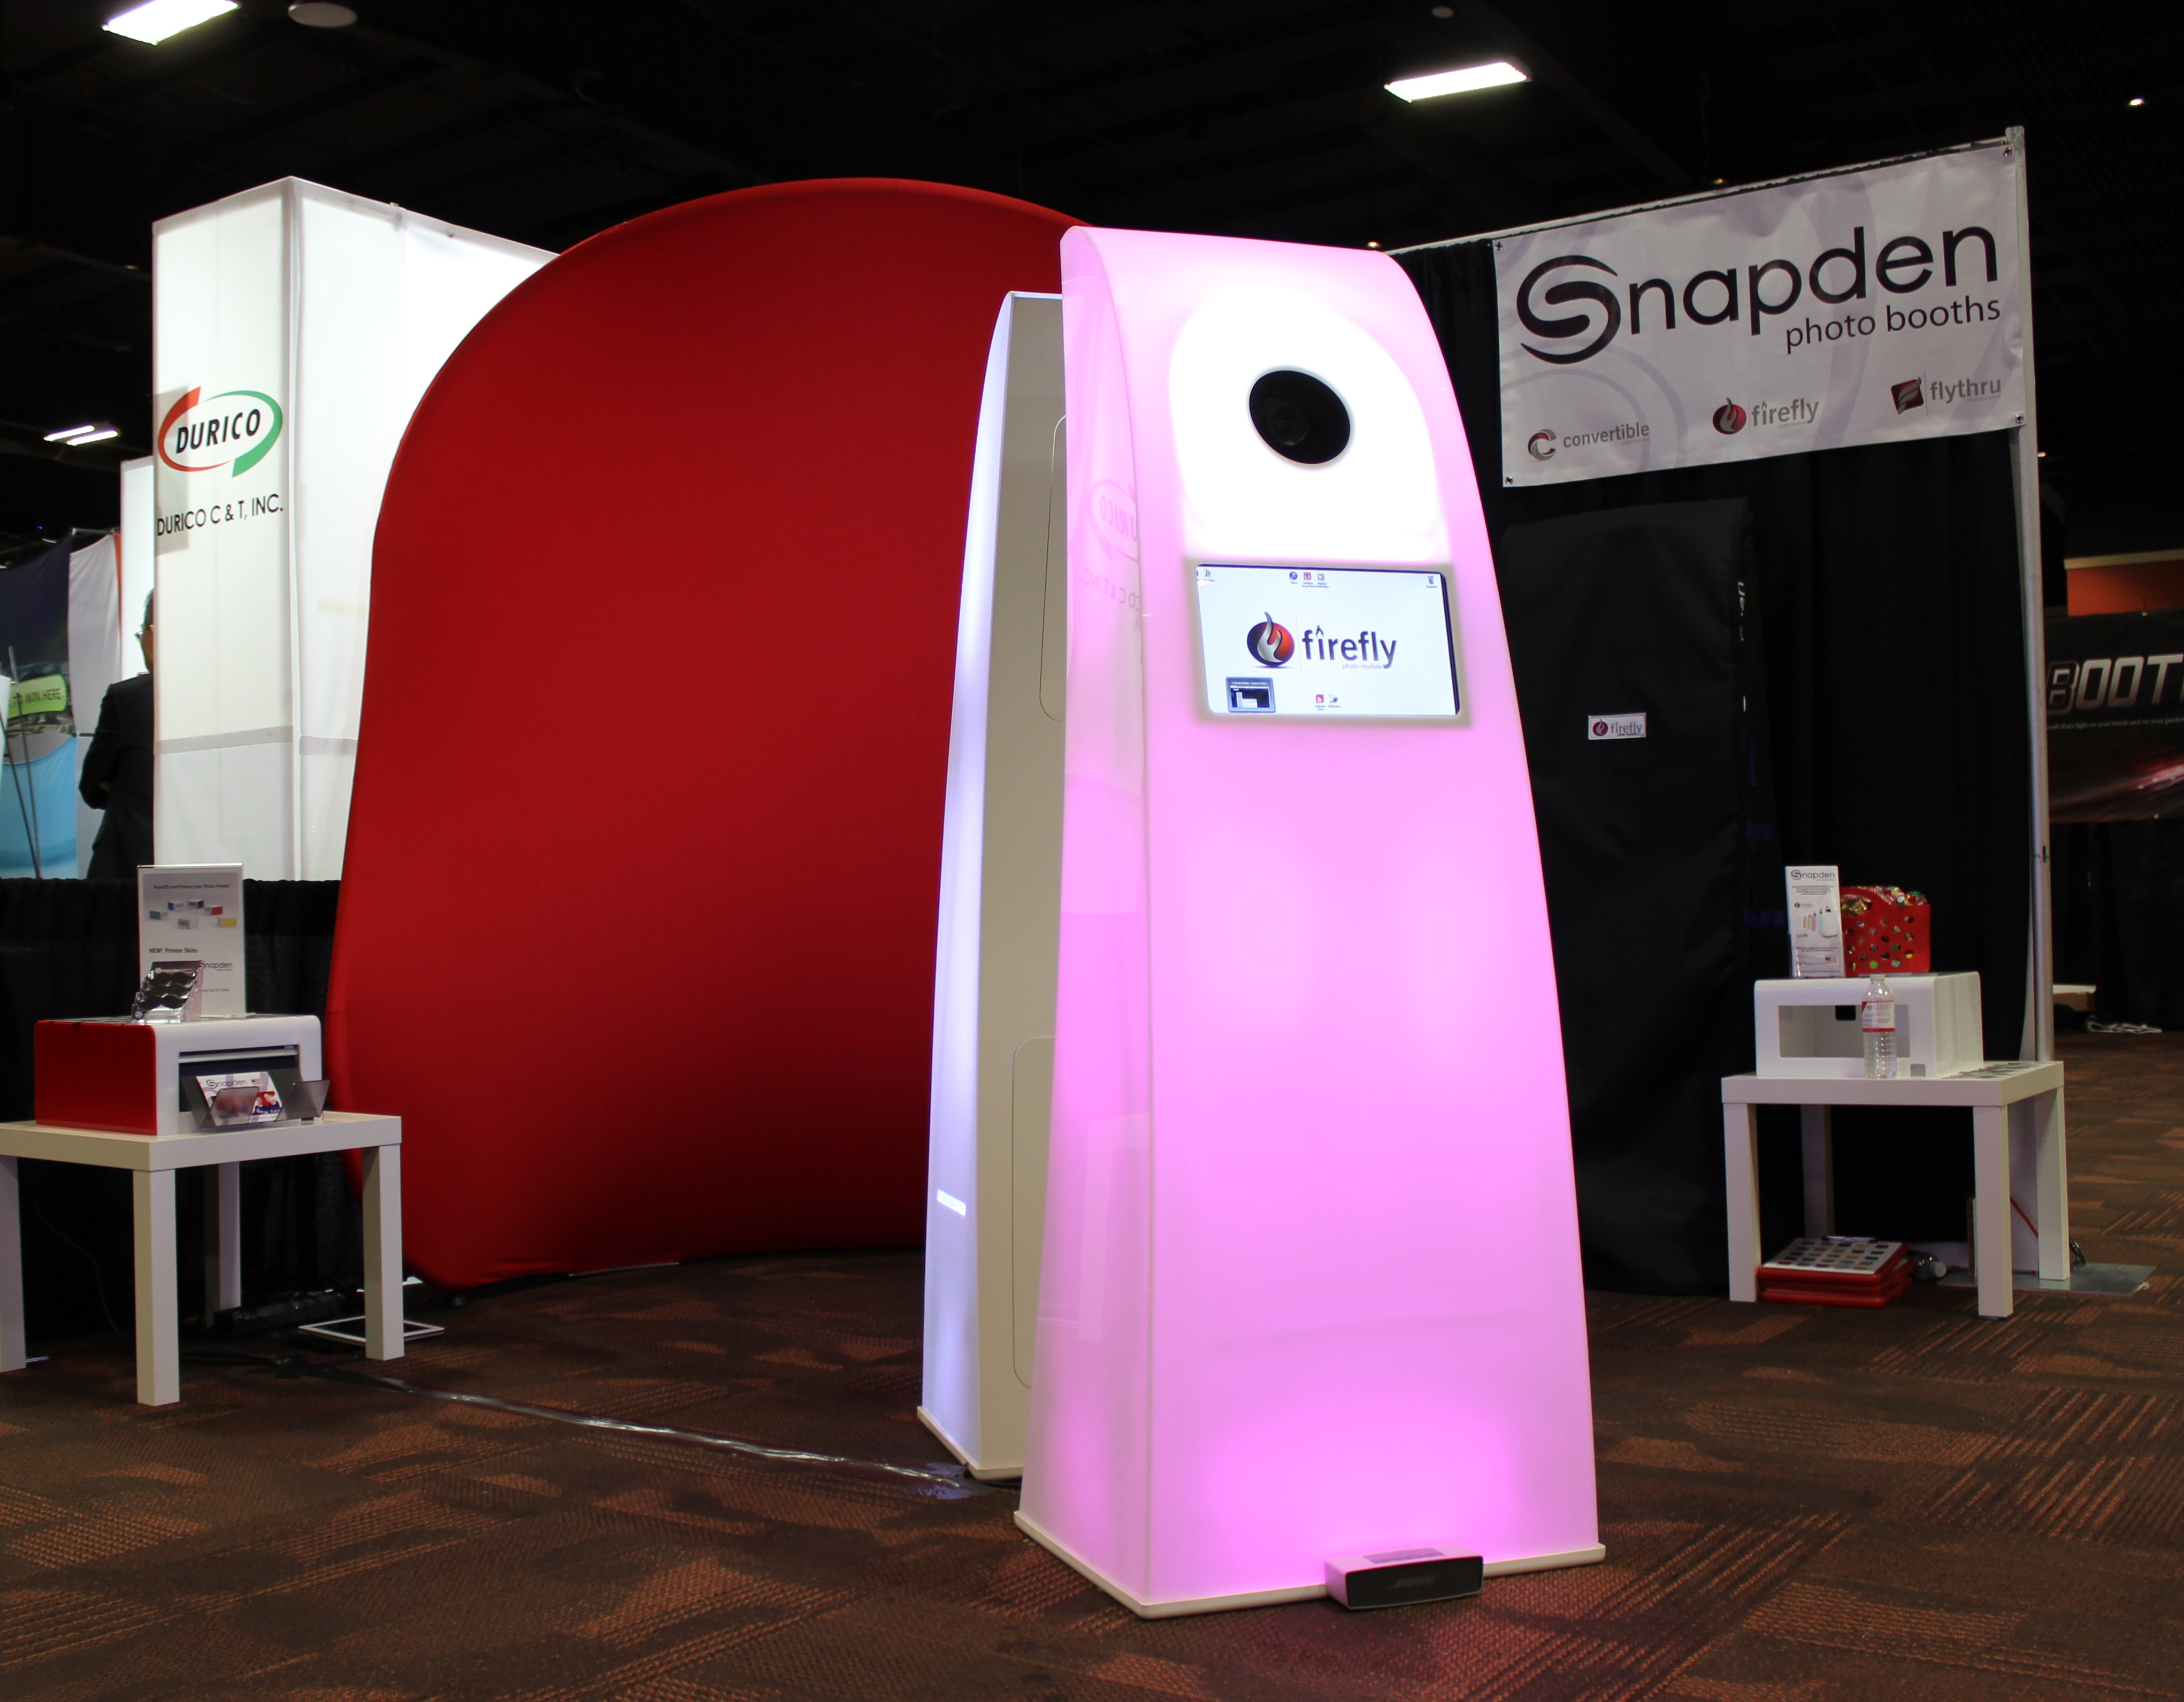 Exhibition Booth For Sale : Glowing photo booth for sale makes impact at las vegas